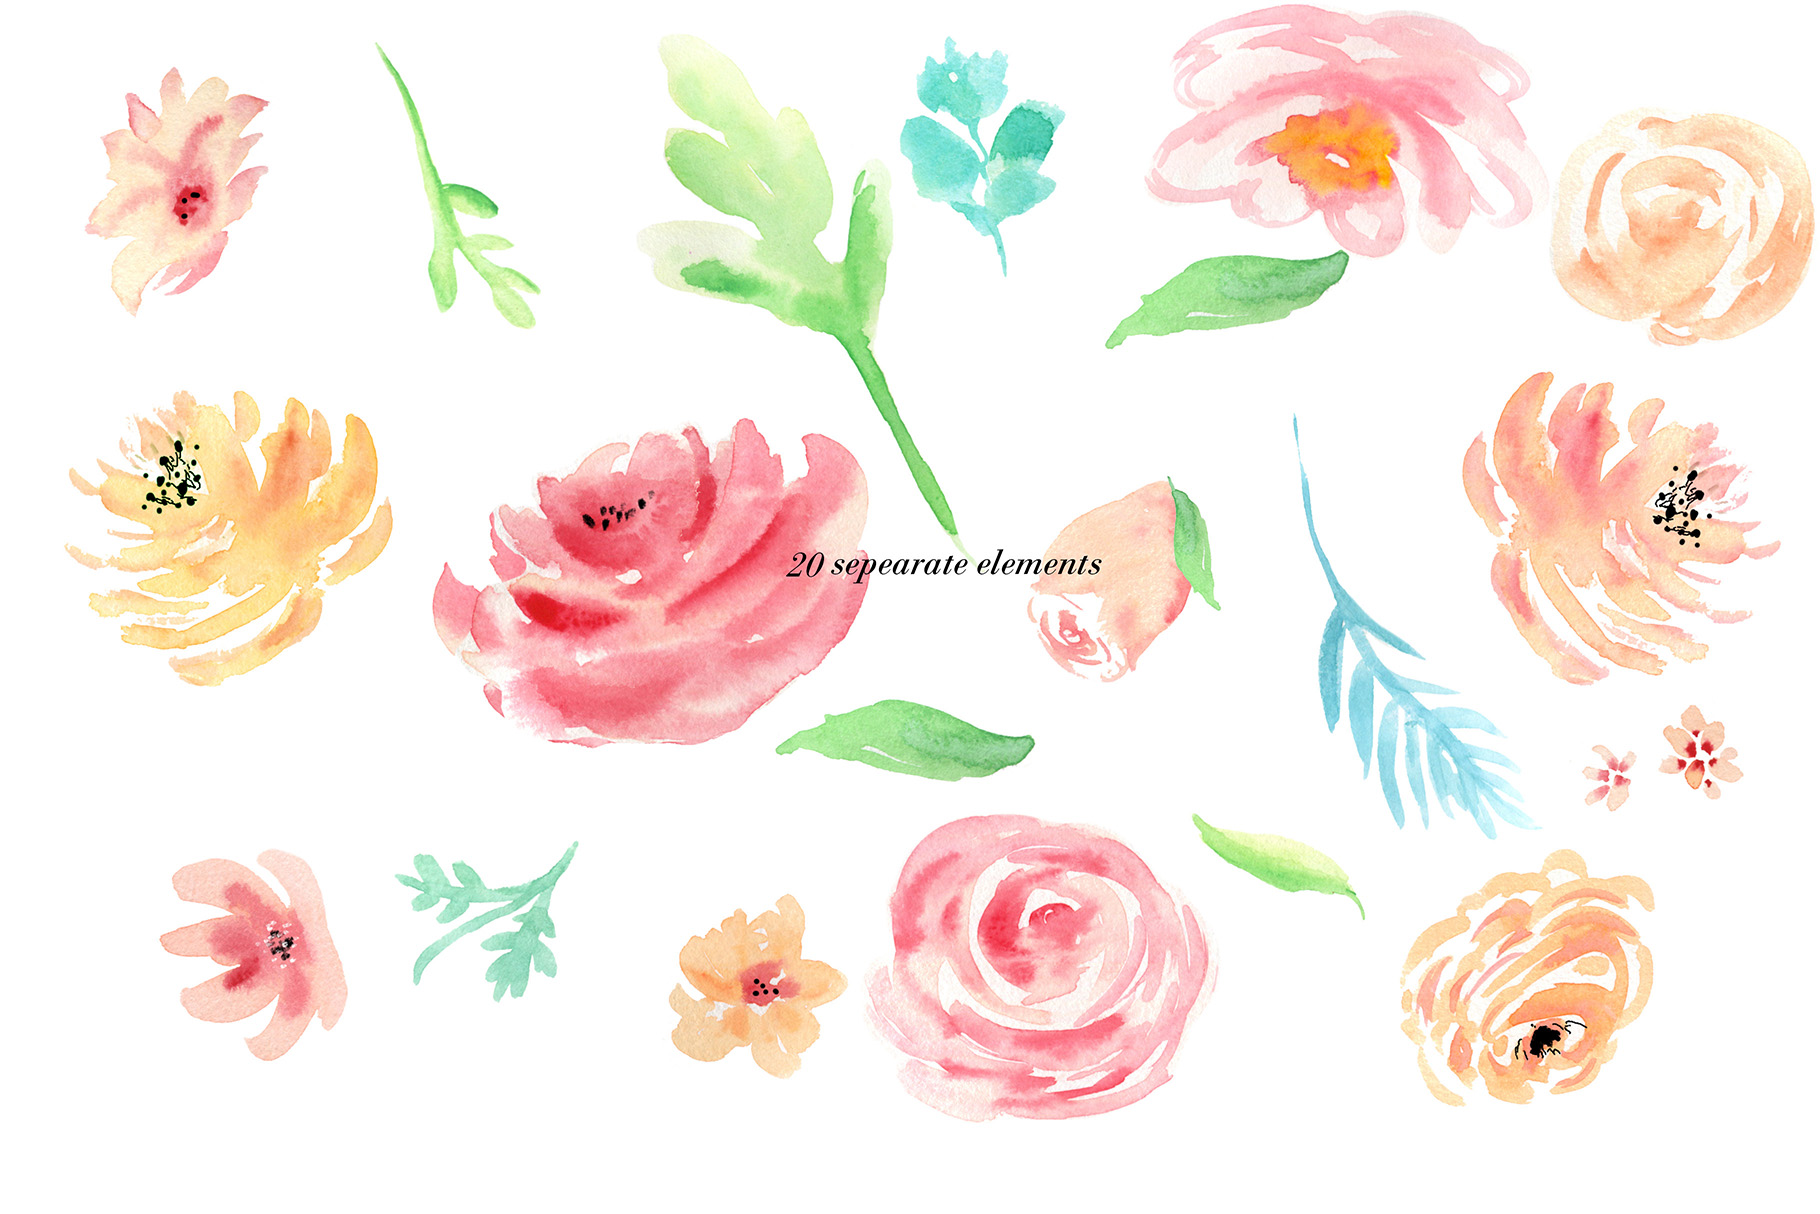 Watercolor flowers clip art. For wedding invitations, scrapbook, thank you card, logo creations. BOHO, Hand painted Watercolor floral example image 5